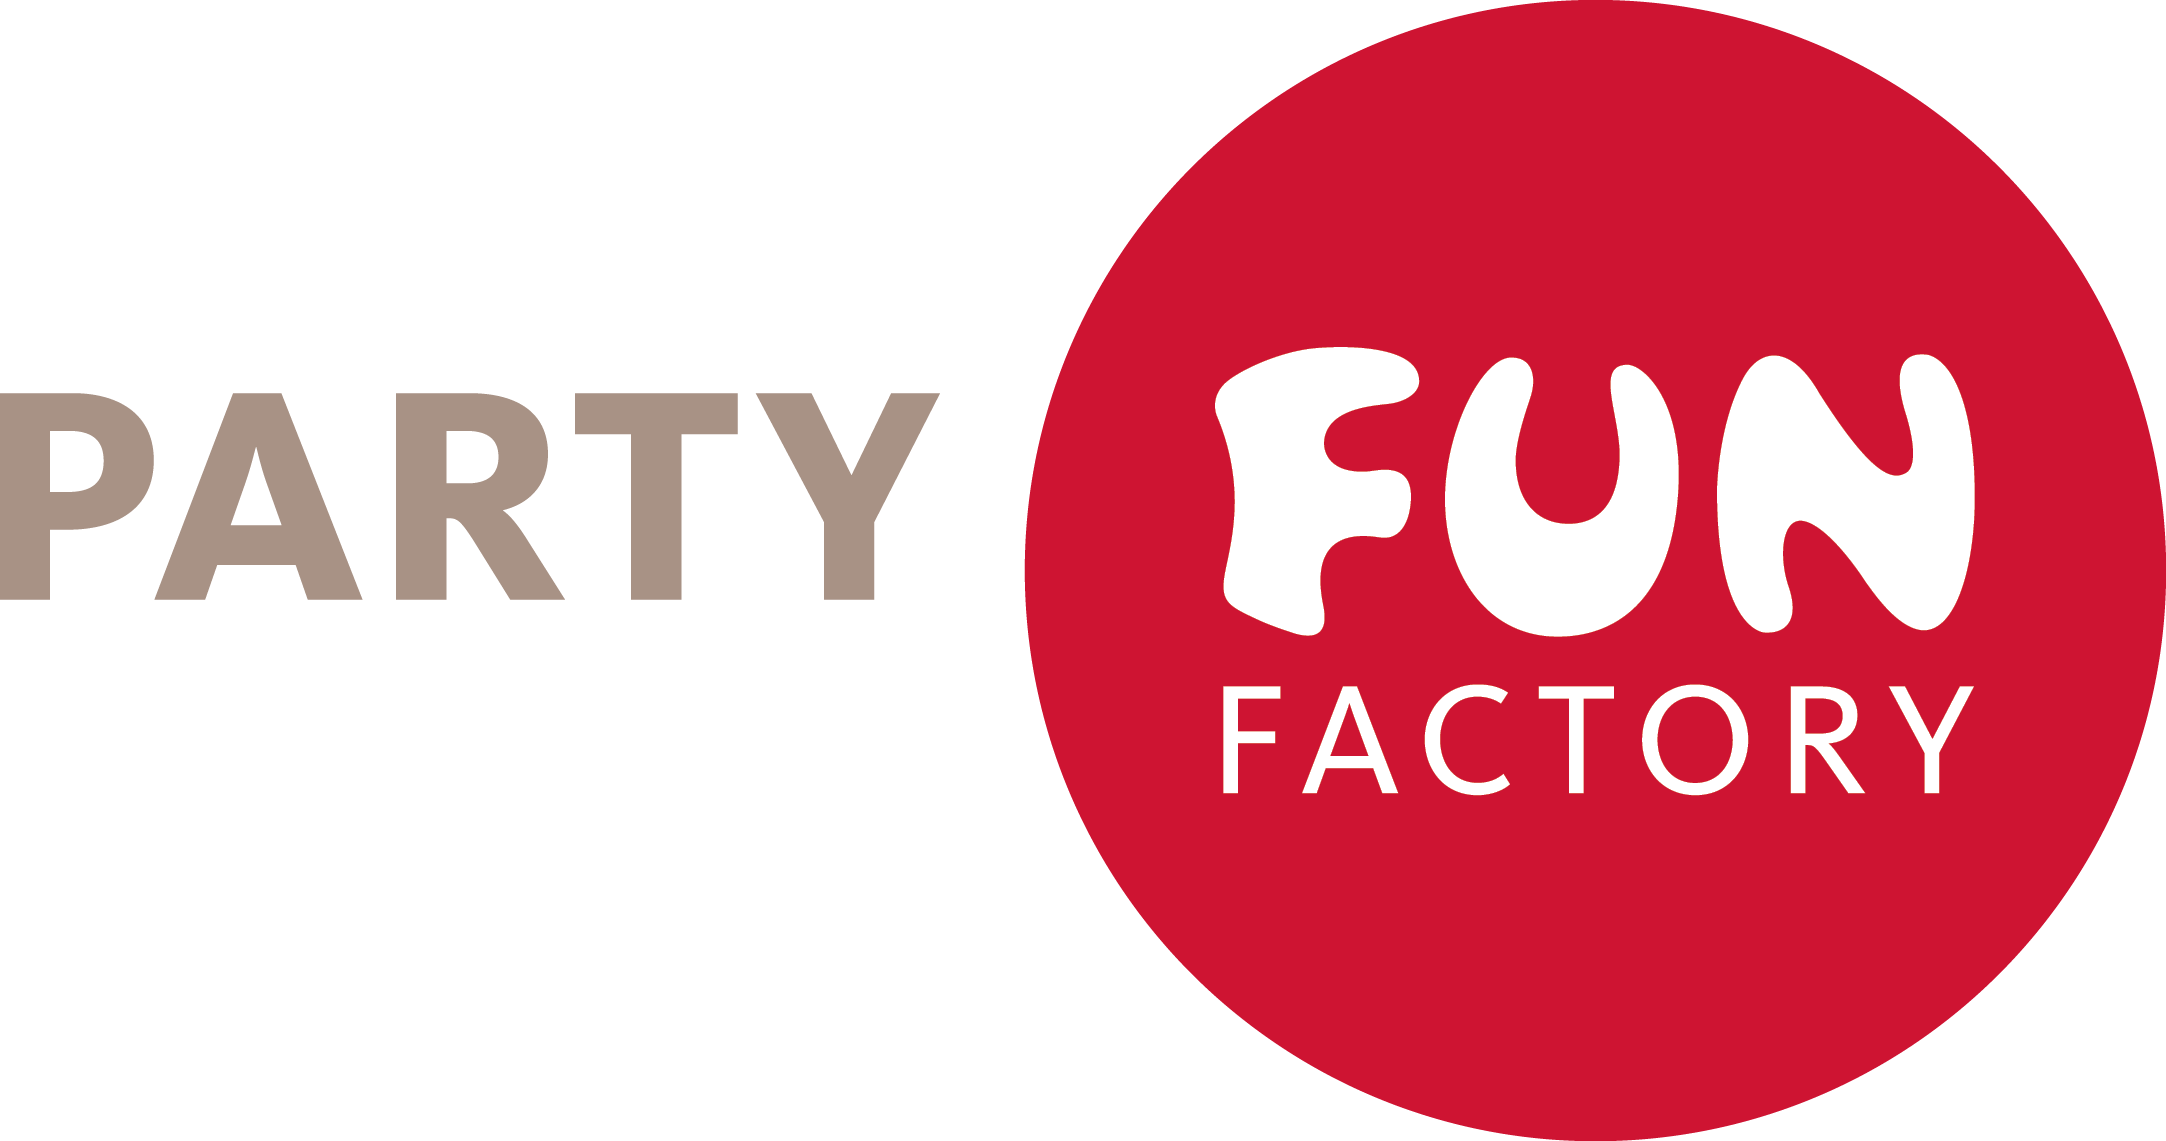 FUN Factory Party